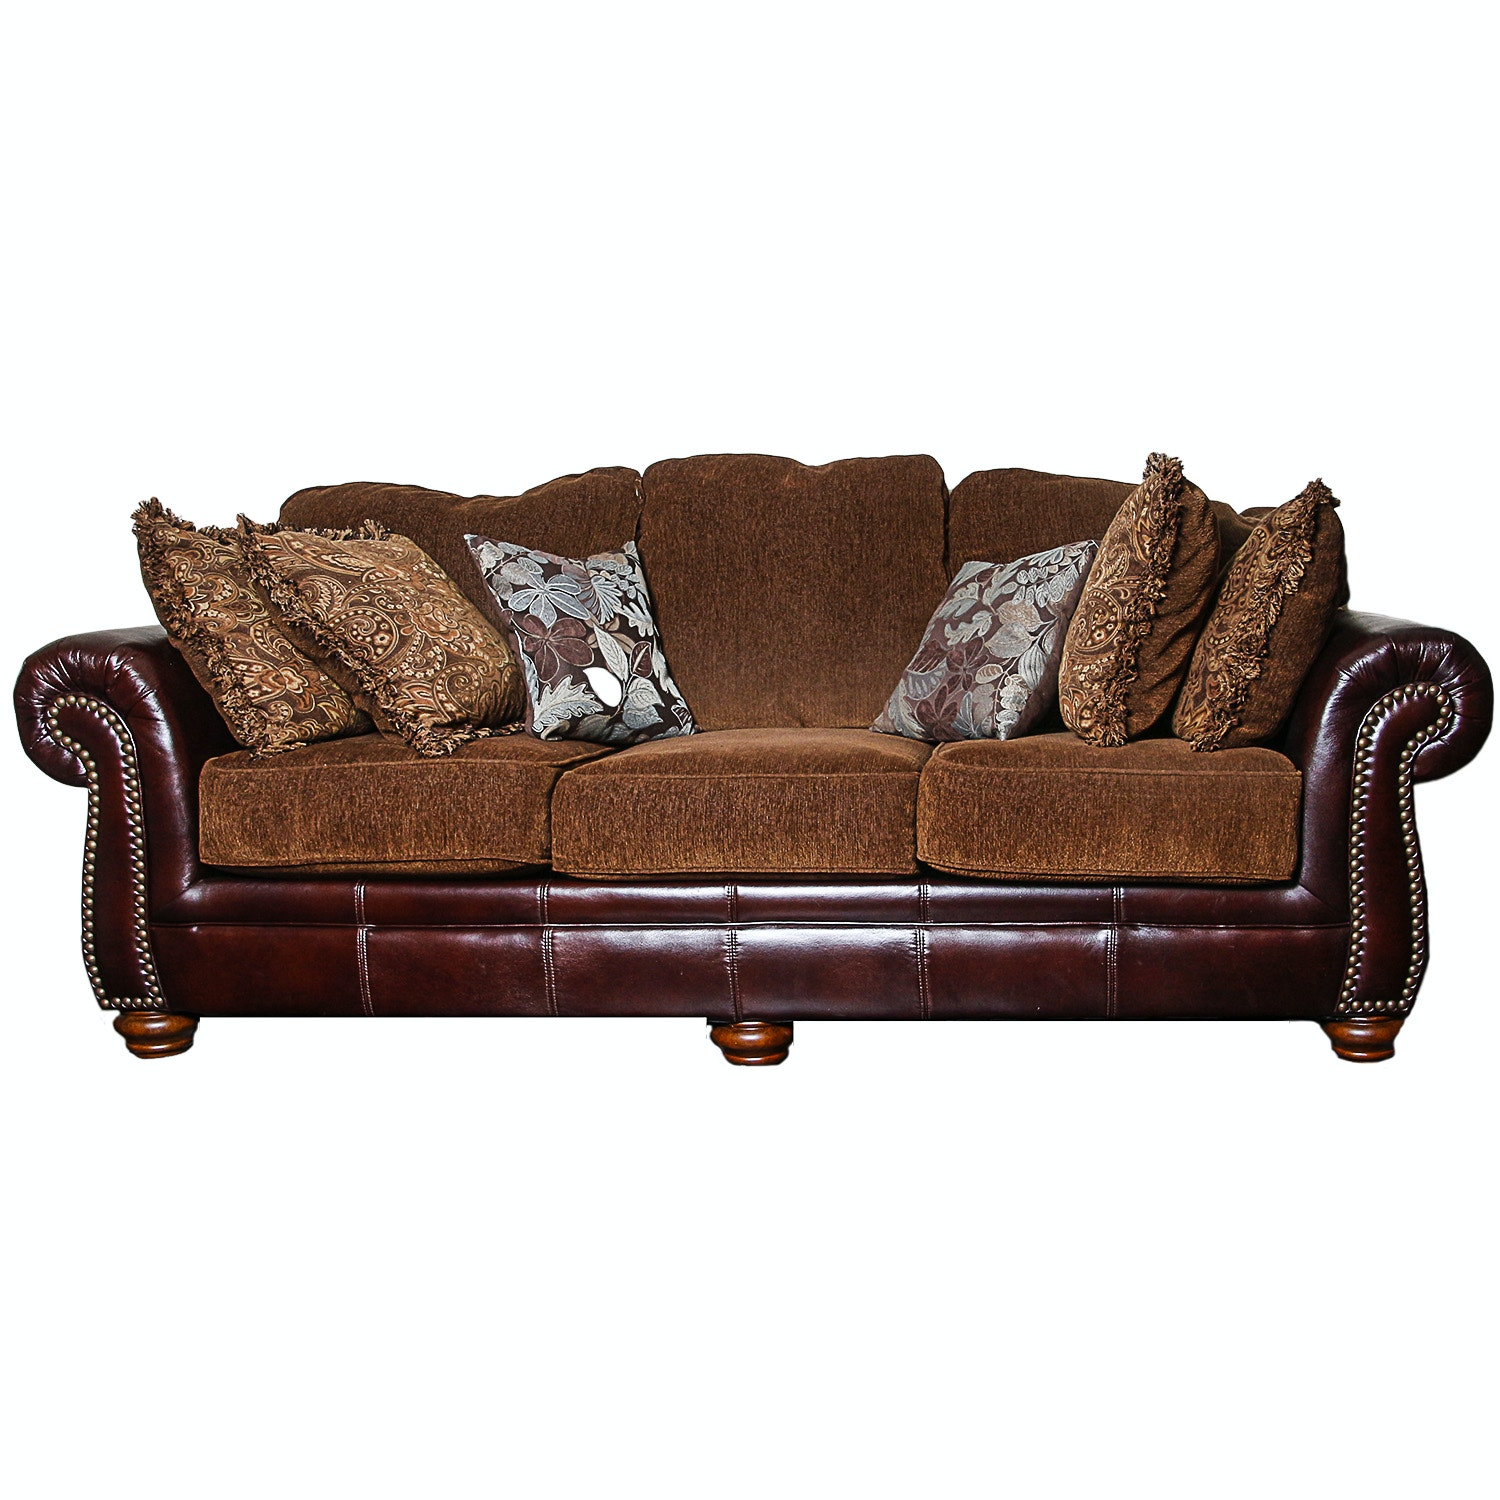 Burgundy Faux Leather Sofa with Brown-Upholstered Cushions